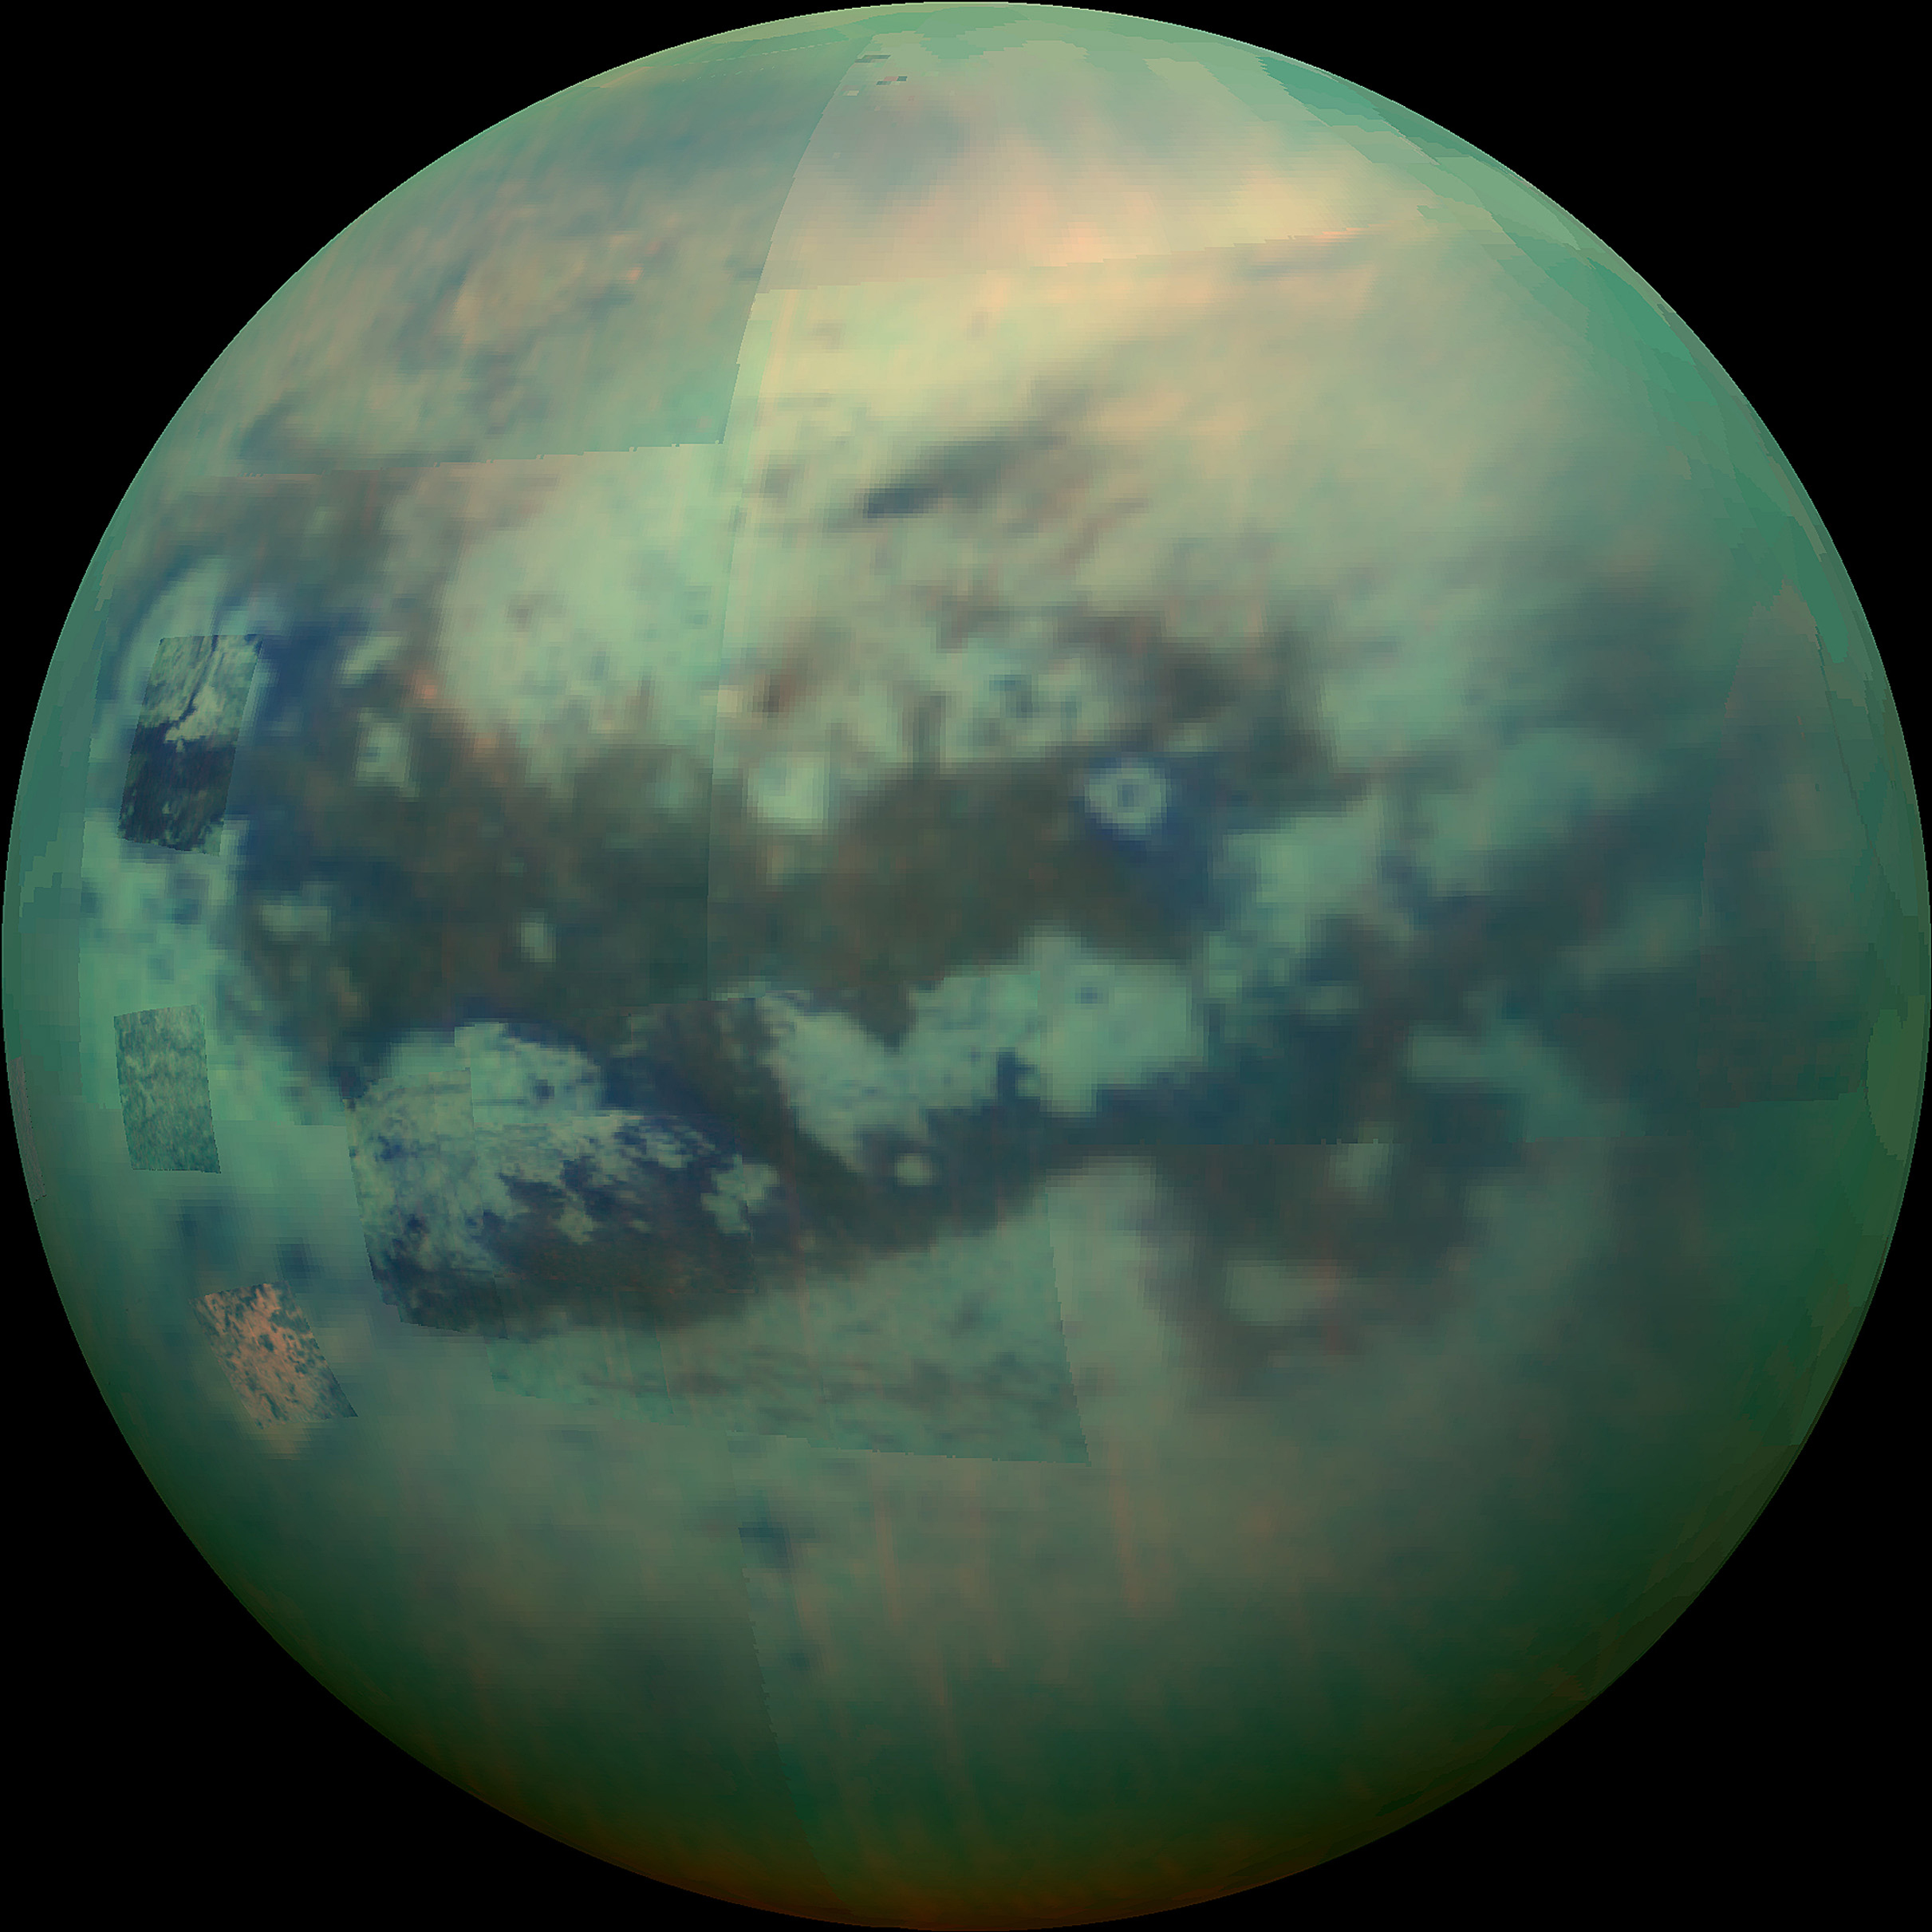 Titan has a rare molecule with a similar chemical structure to DNA in its atmosphere